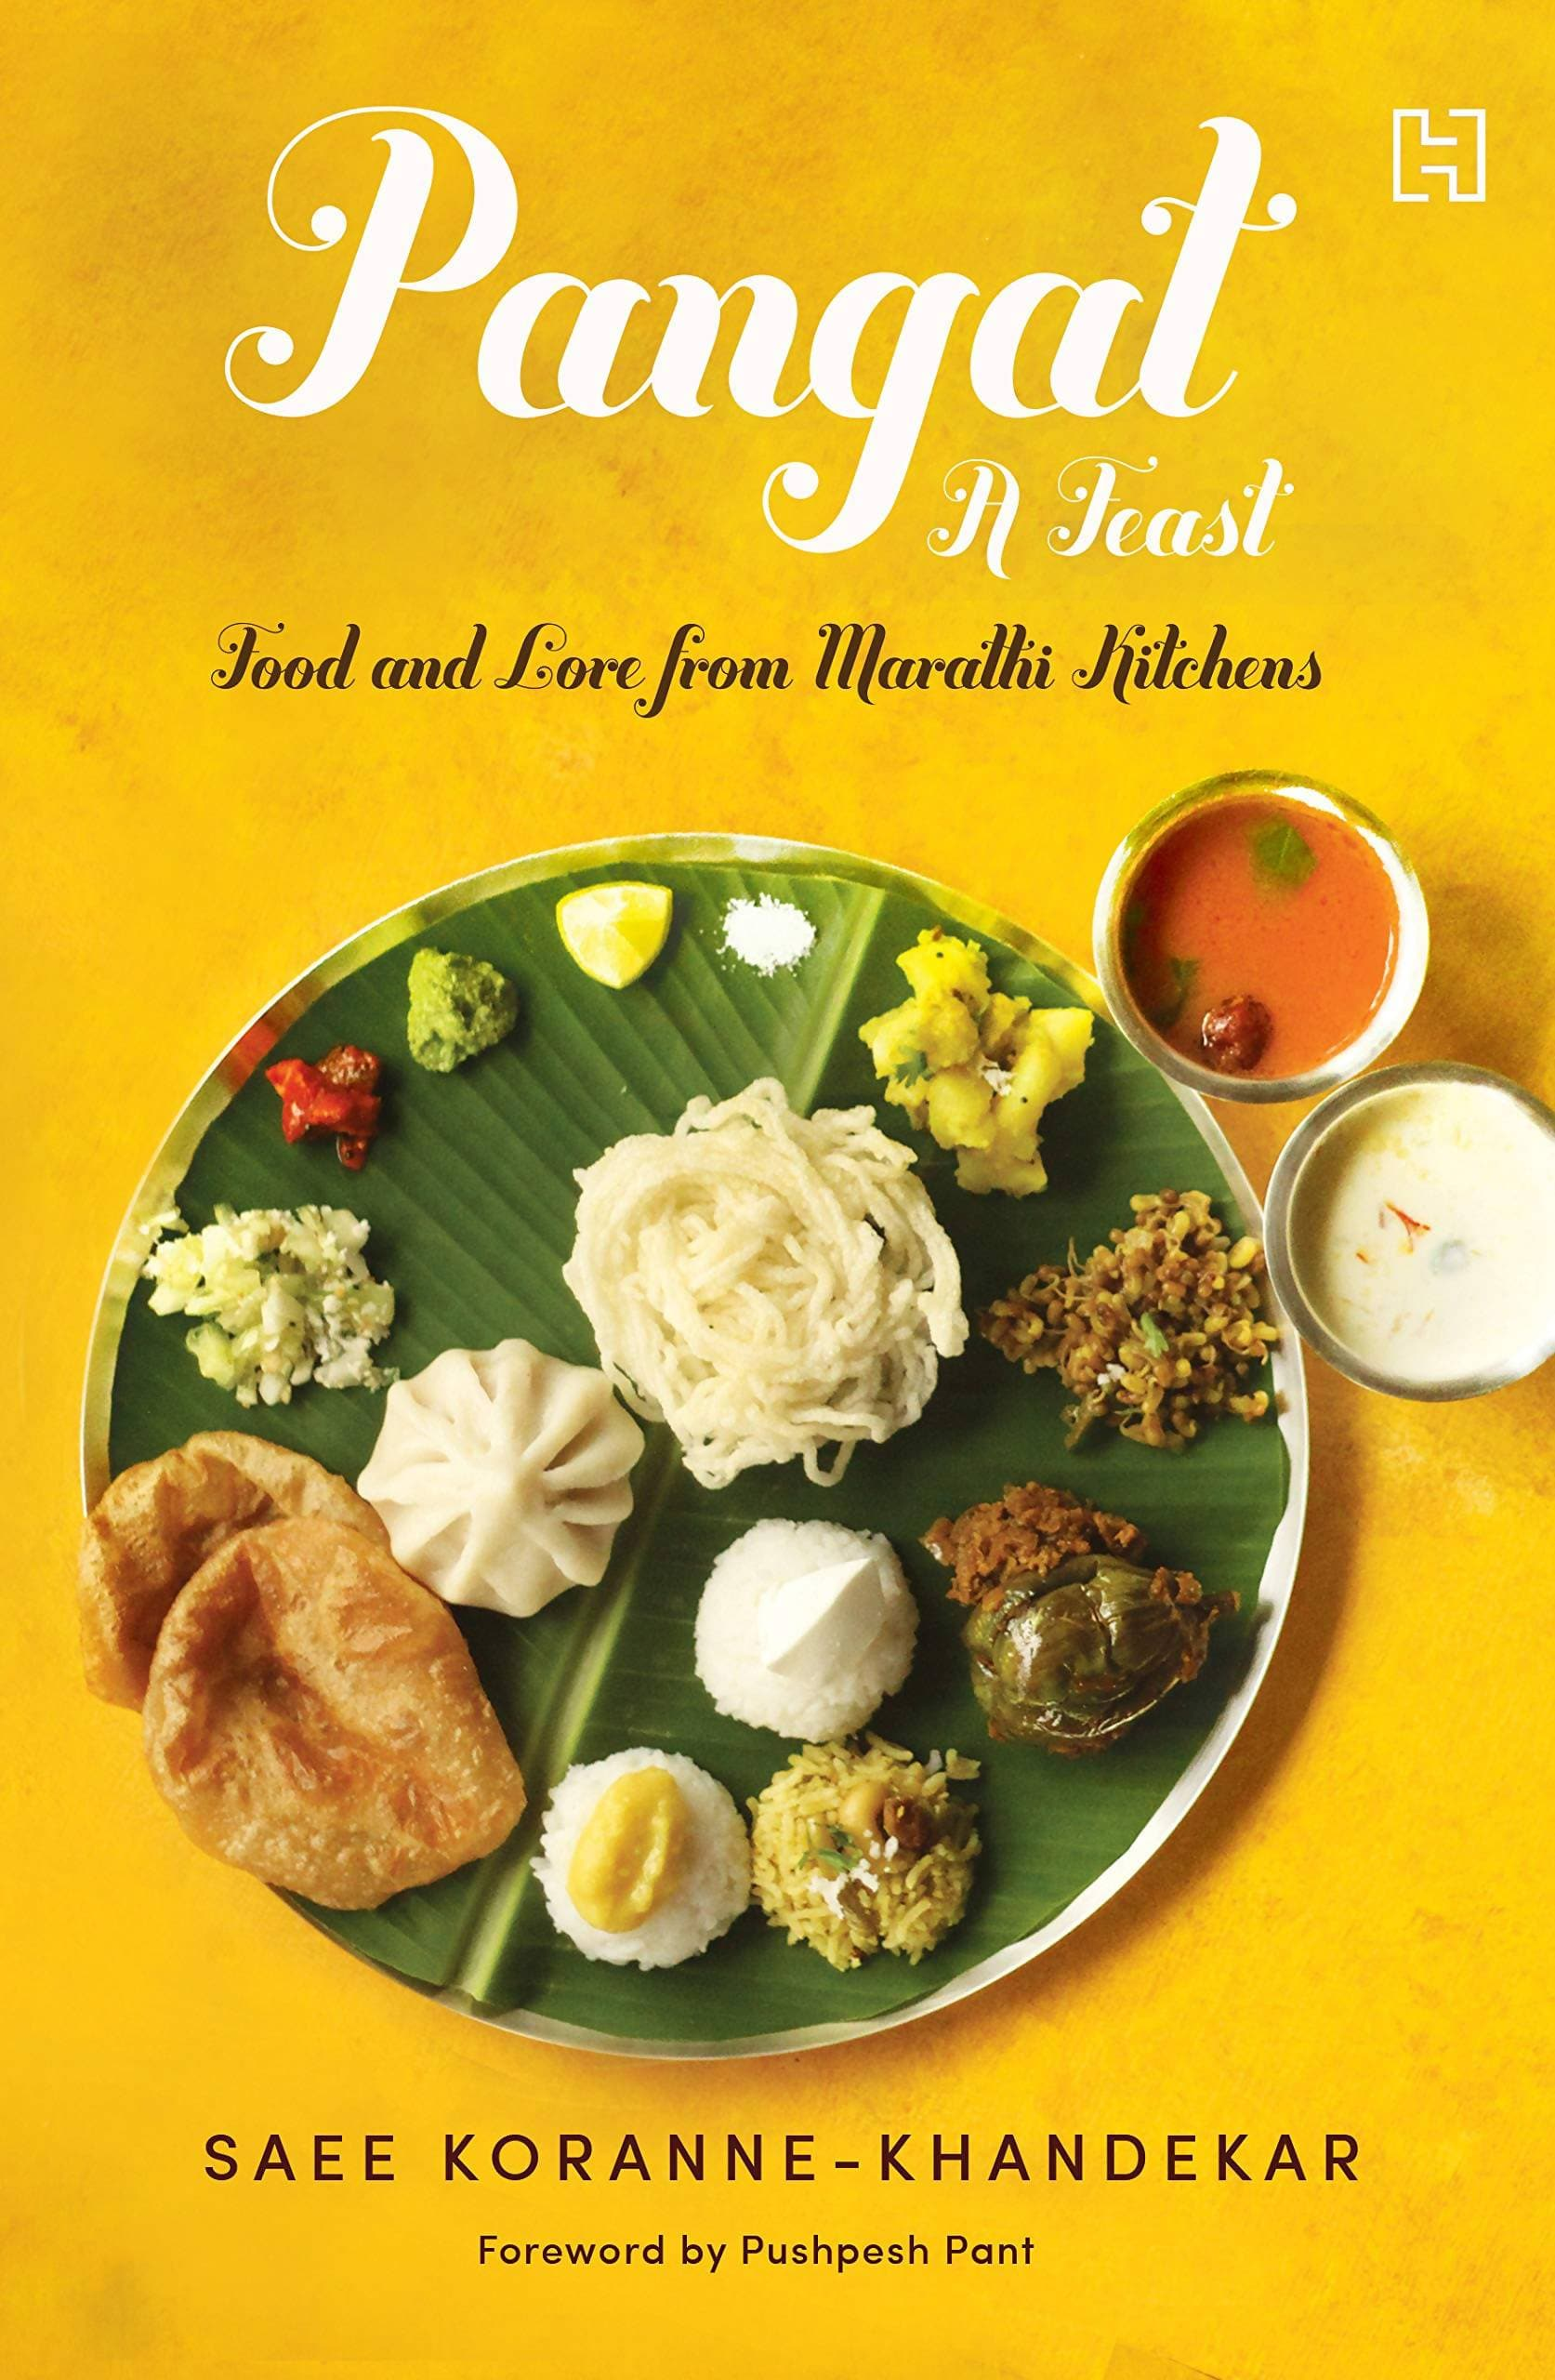 Pangat a Feast : Food and Lore from Marathi Kitchens